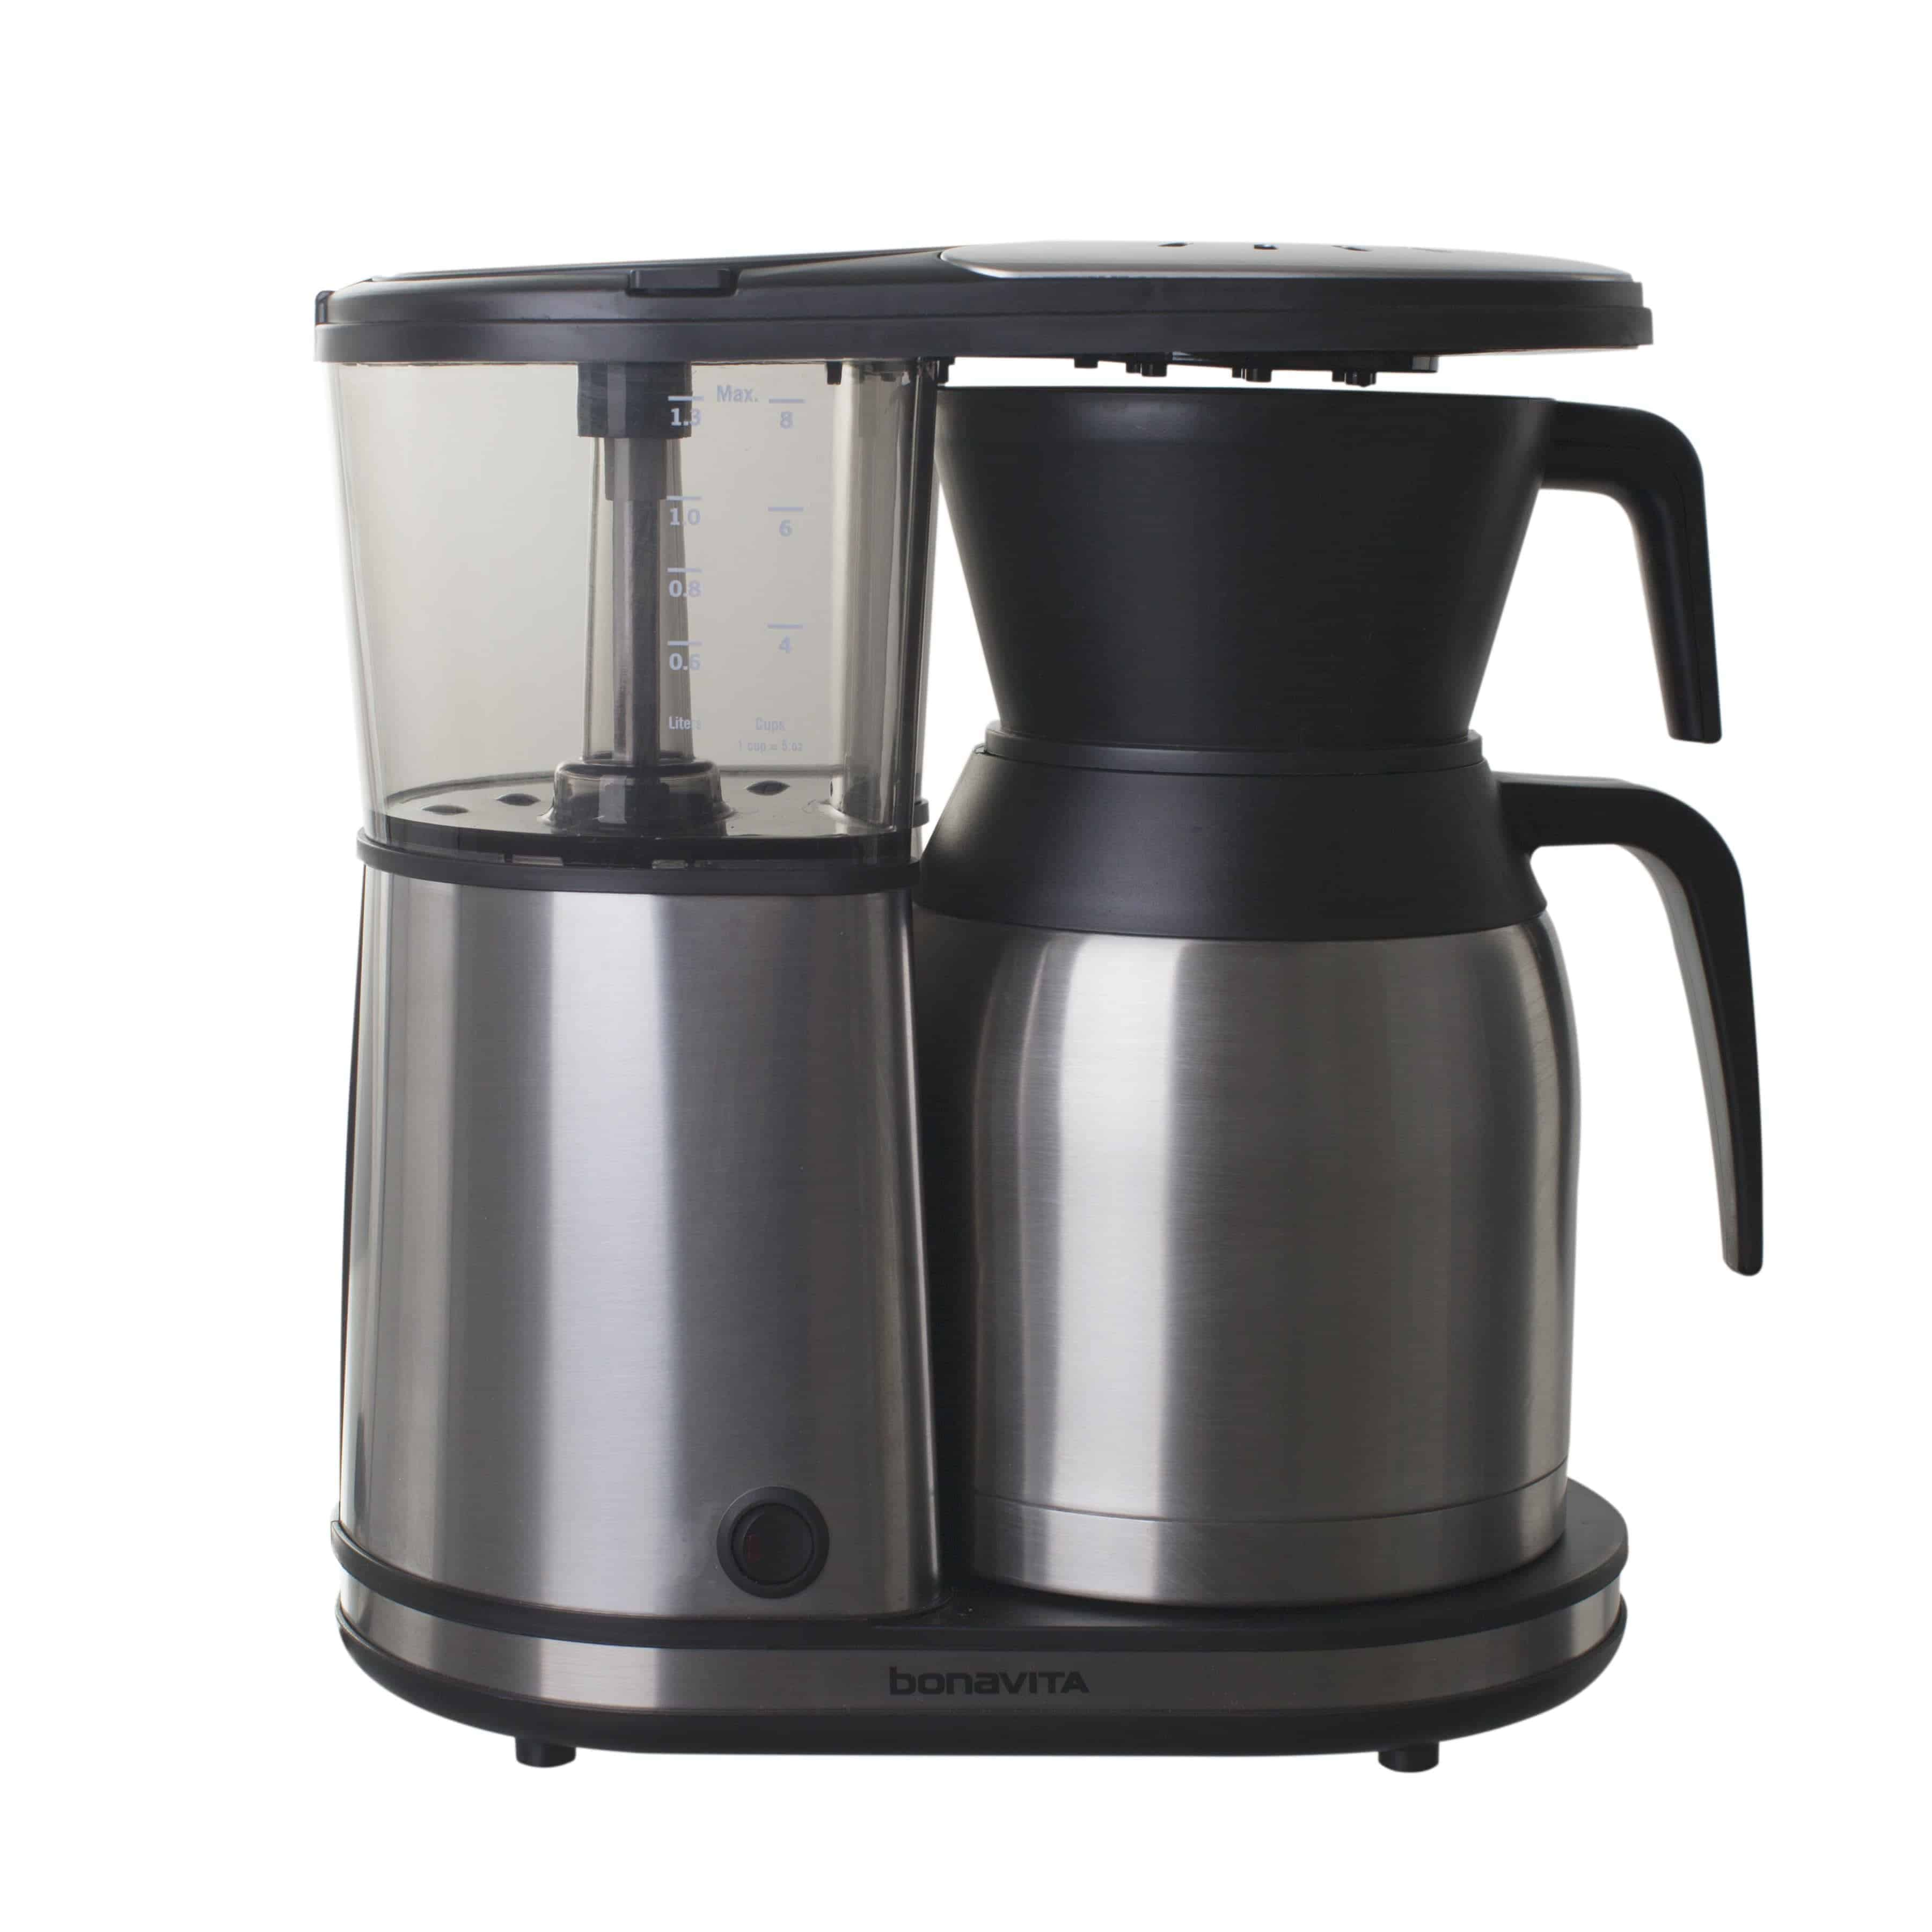 european cup office coffee. Bonavita\u0027s BV1900TS Is An 8-cup Capacity Carafe Style Brewing System That Full Of Features Which Make It A Top Choice For Customers Looking Durable European Cup Office Coffee